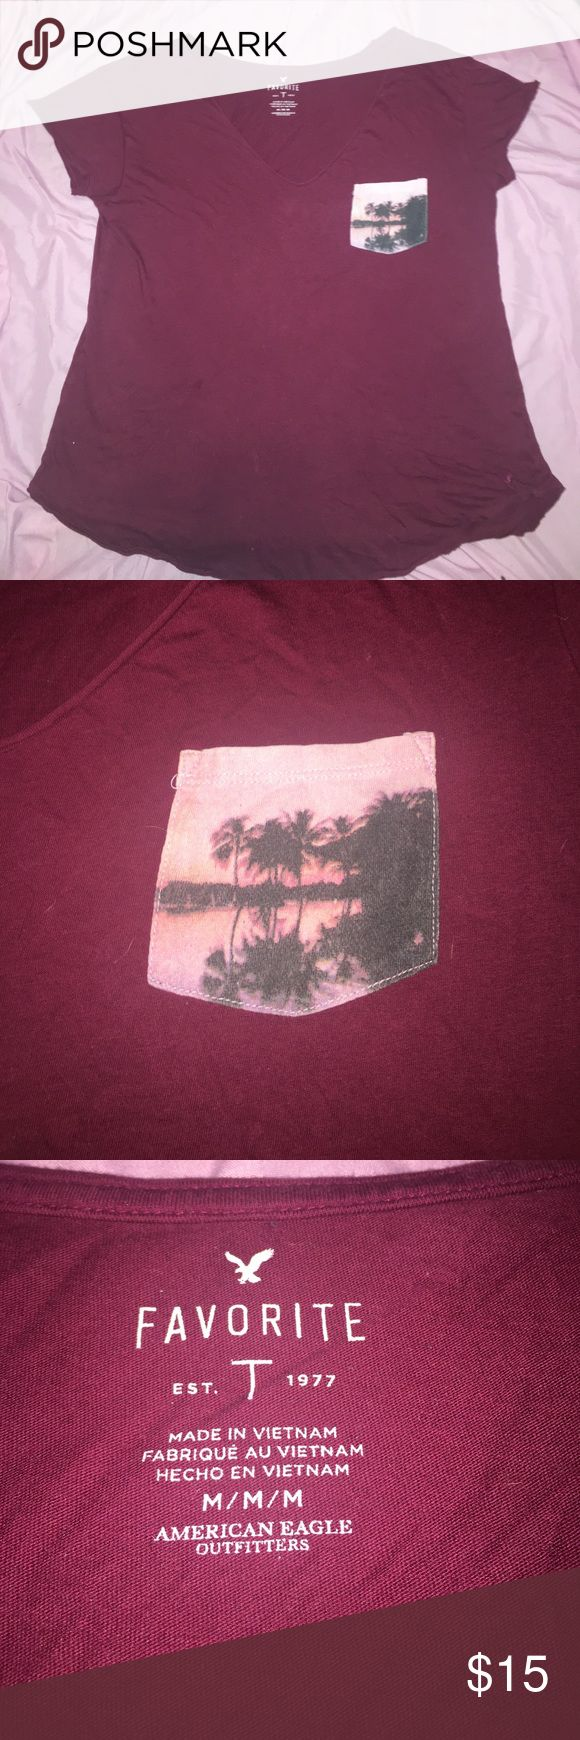 American Eagle Pocket t-shirt Maroon Pocket tee from American Eagle Outfitters. Only worn a couple of times because its too big on me. American Eagle Outfitters Tops Tees - Short Sleeve